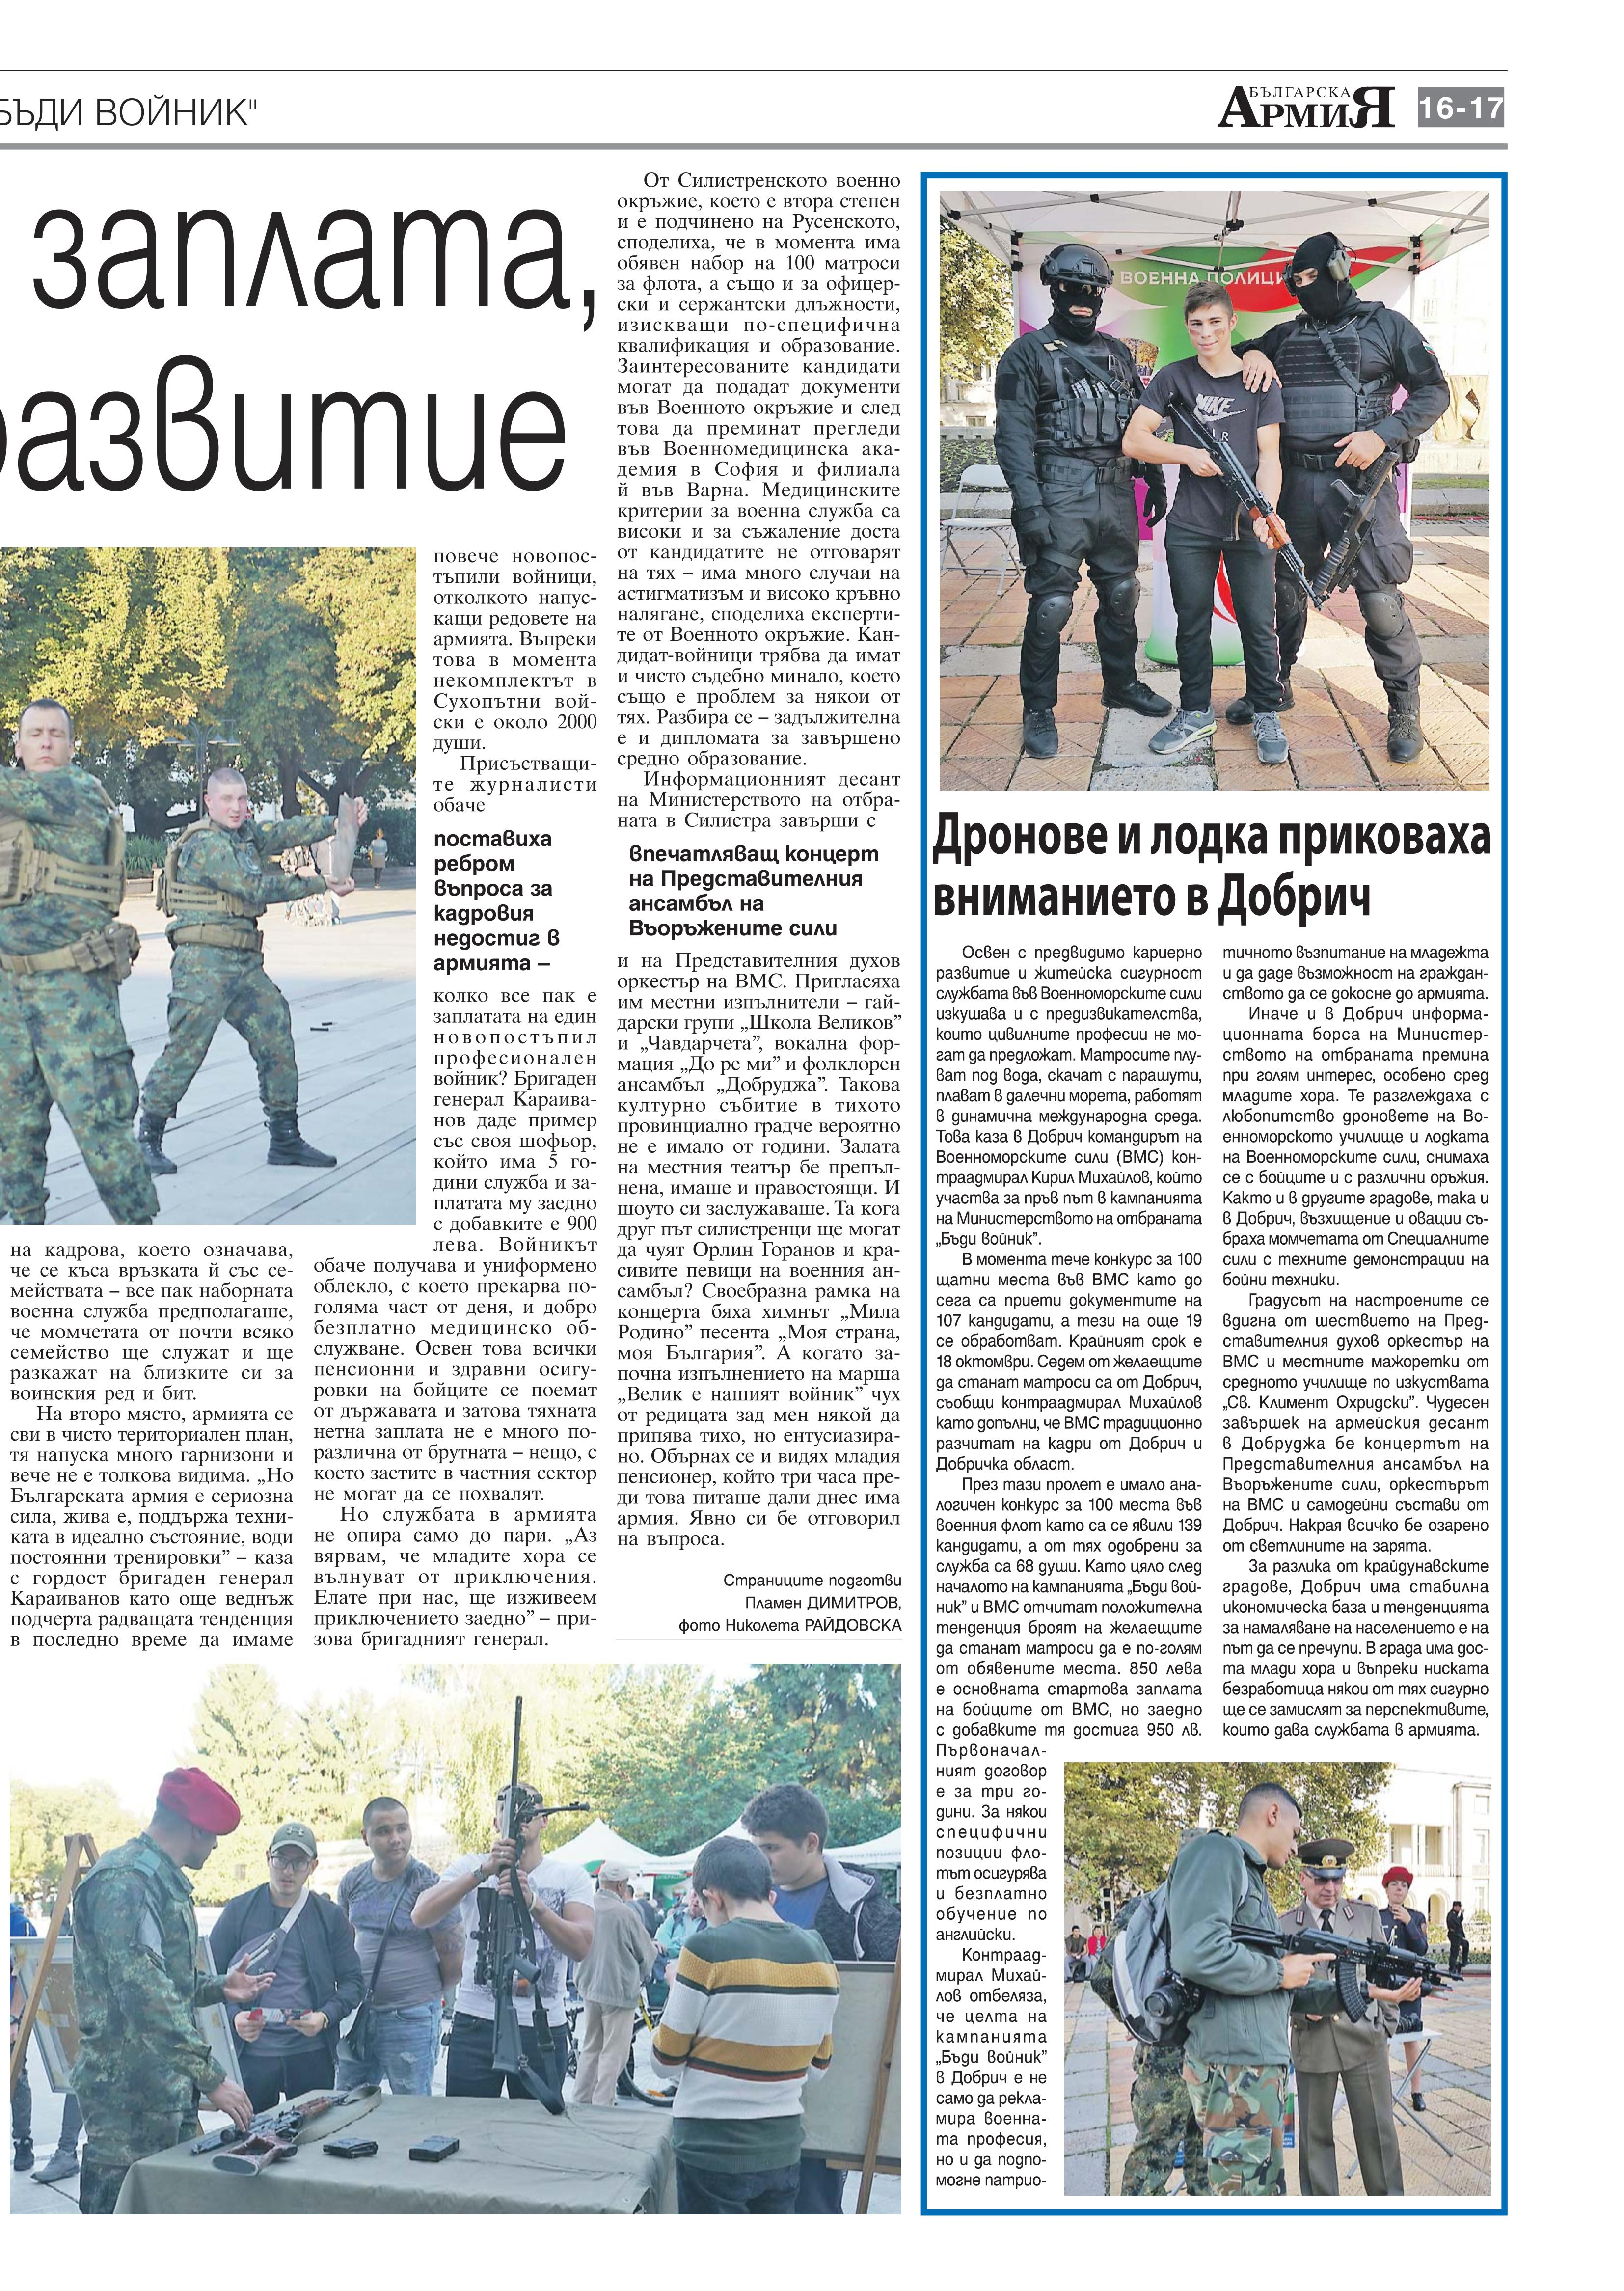 https://www.armymedia.bg/wp-content/uploads/2015/06/17.page1_-111.jpg